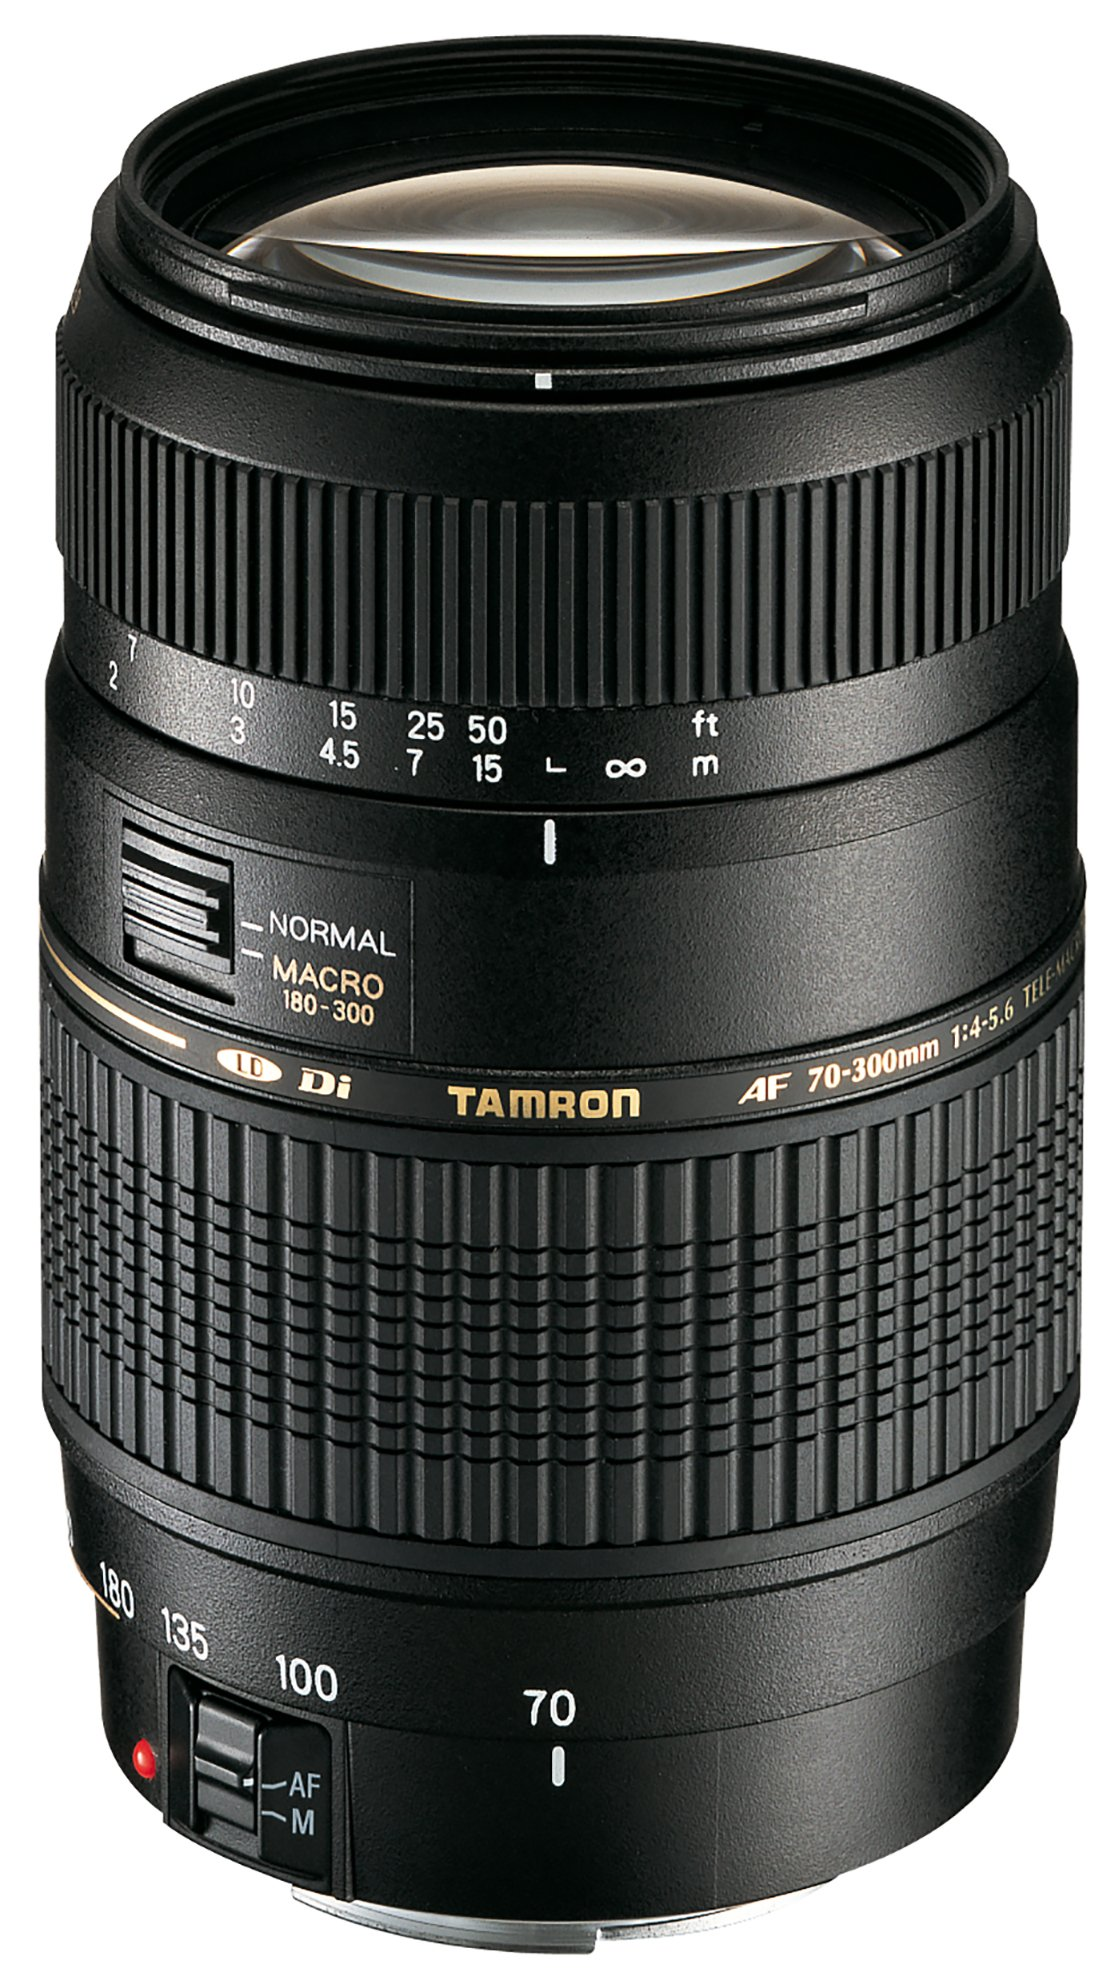 Tamron-A17E-AF-70-300mm-F4-56-Di-LD-Macro-Telephoto-Zoom-Lens-with-Hood-for-Canon-DSLR-Camera-Black